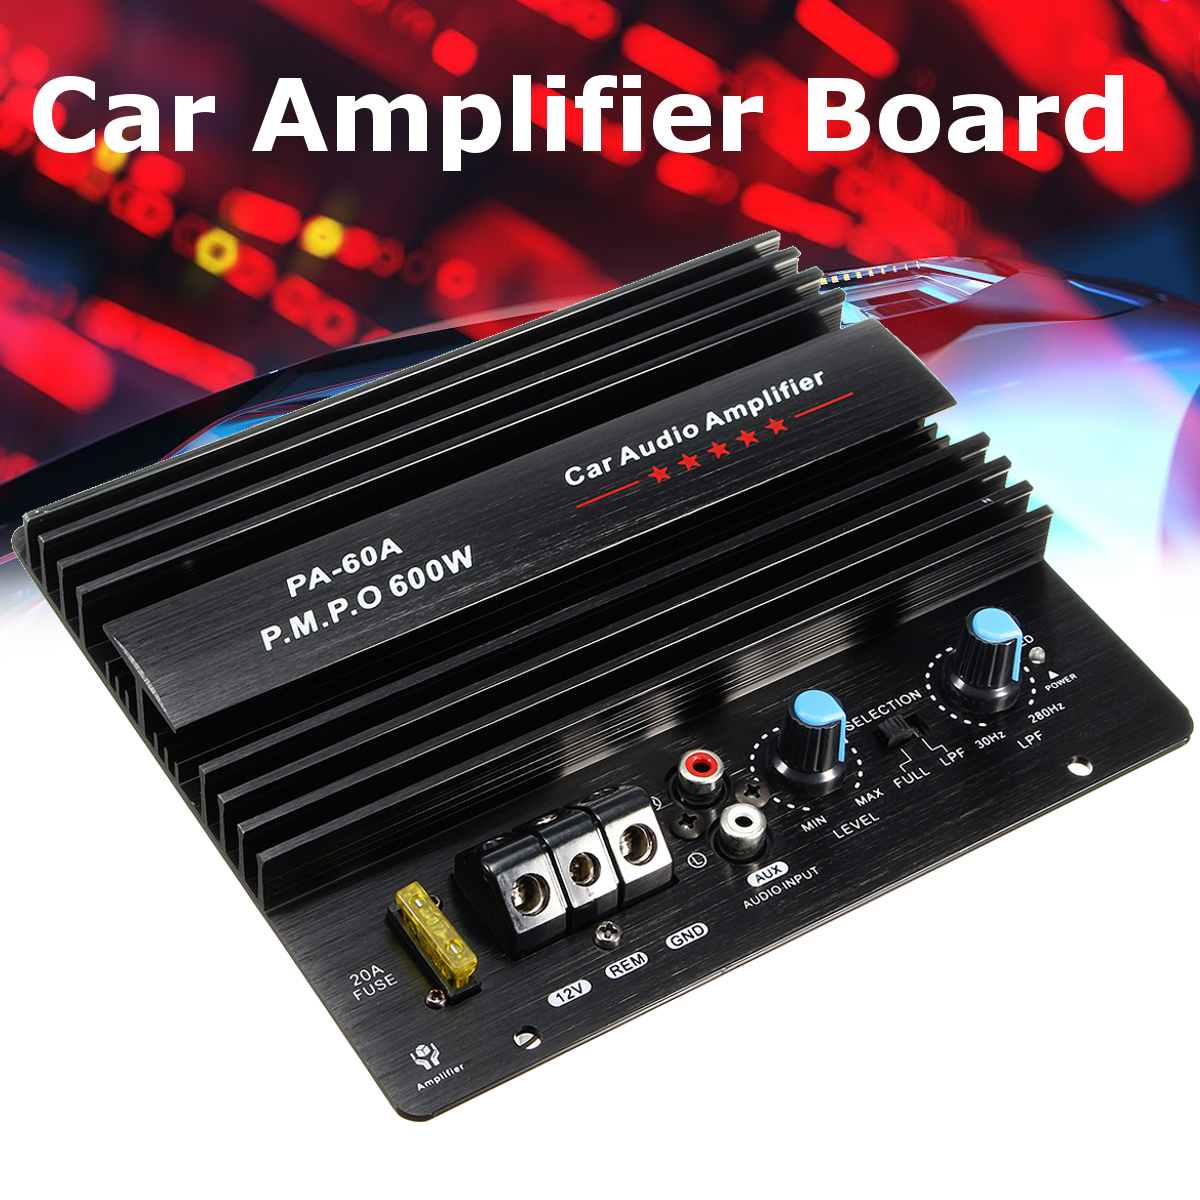 New 12v 600w Mono Car Audio Power Amplifier Powerful Bass Subwoofers Circuit And Explanation Electronic Circuits Amp Pa 60a In From Consumer Electronics On Alibaba Group